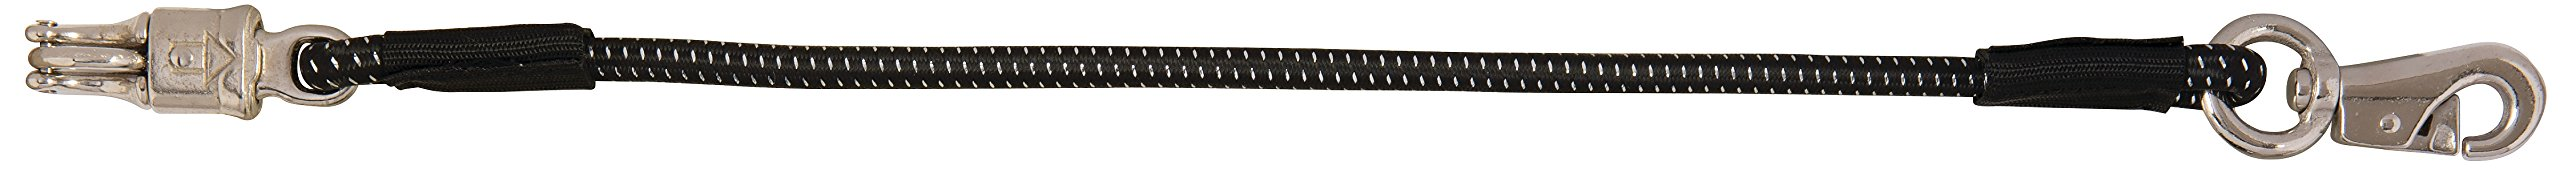 Weaver Leather Bungee Trailer Tie, Black with